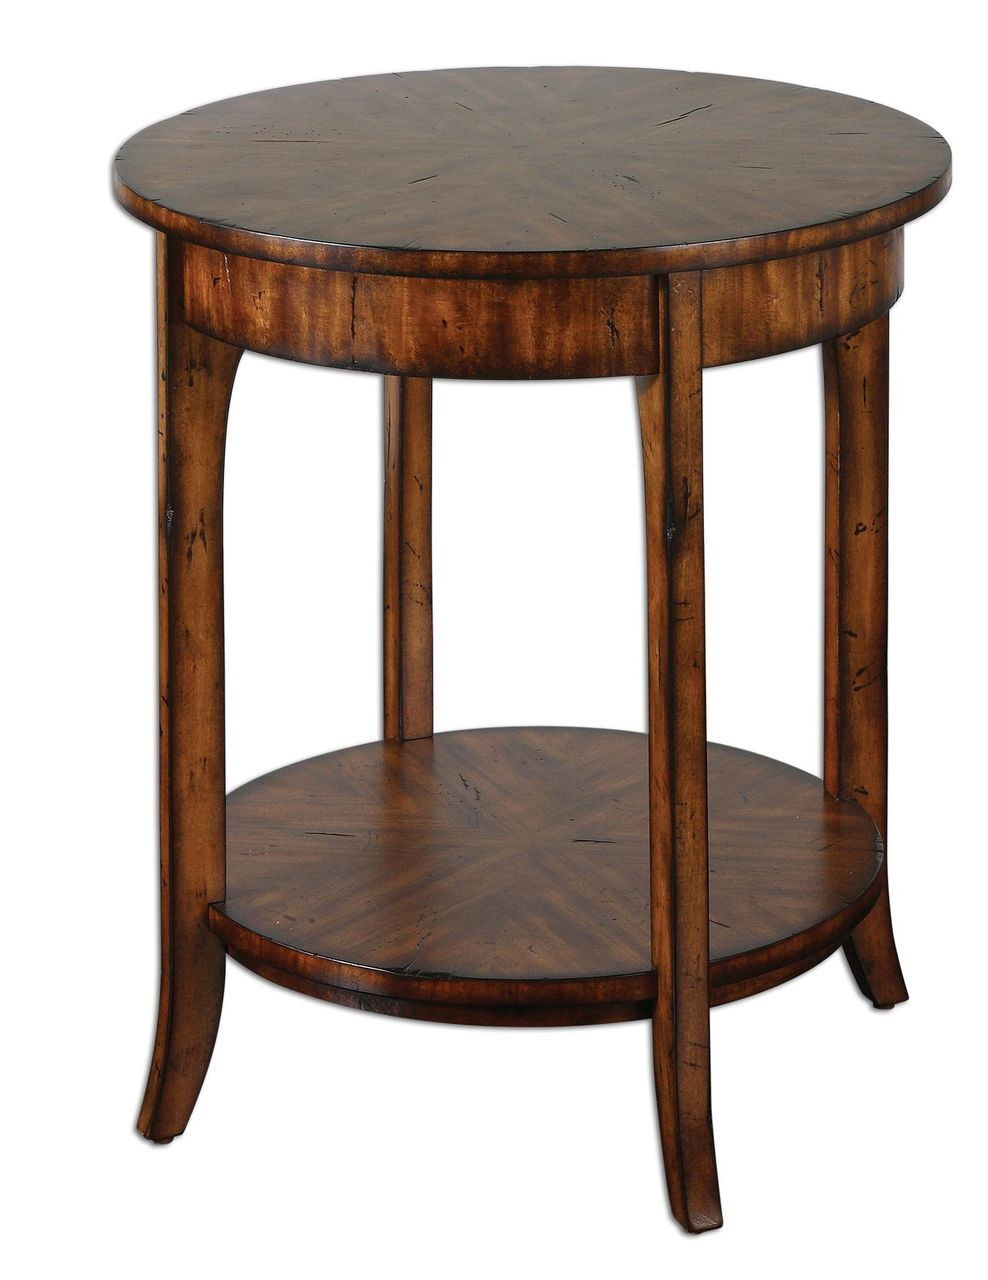 elegant rustic round wood accent table swanky home classic furniture design wine storage cabinets grey chest white end with target chairs pier one headboards leather black glass